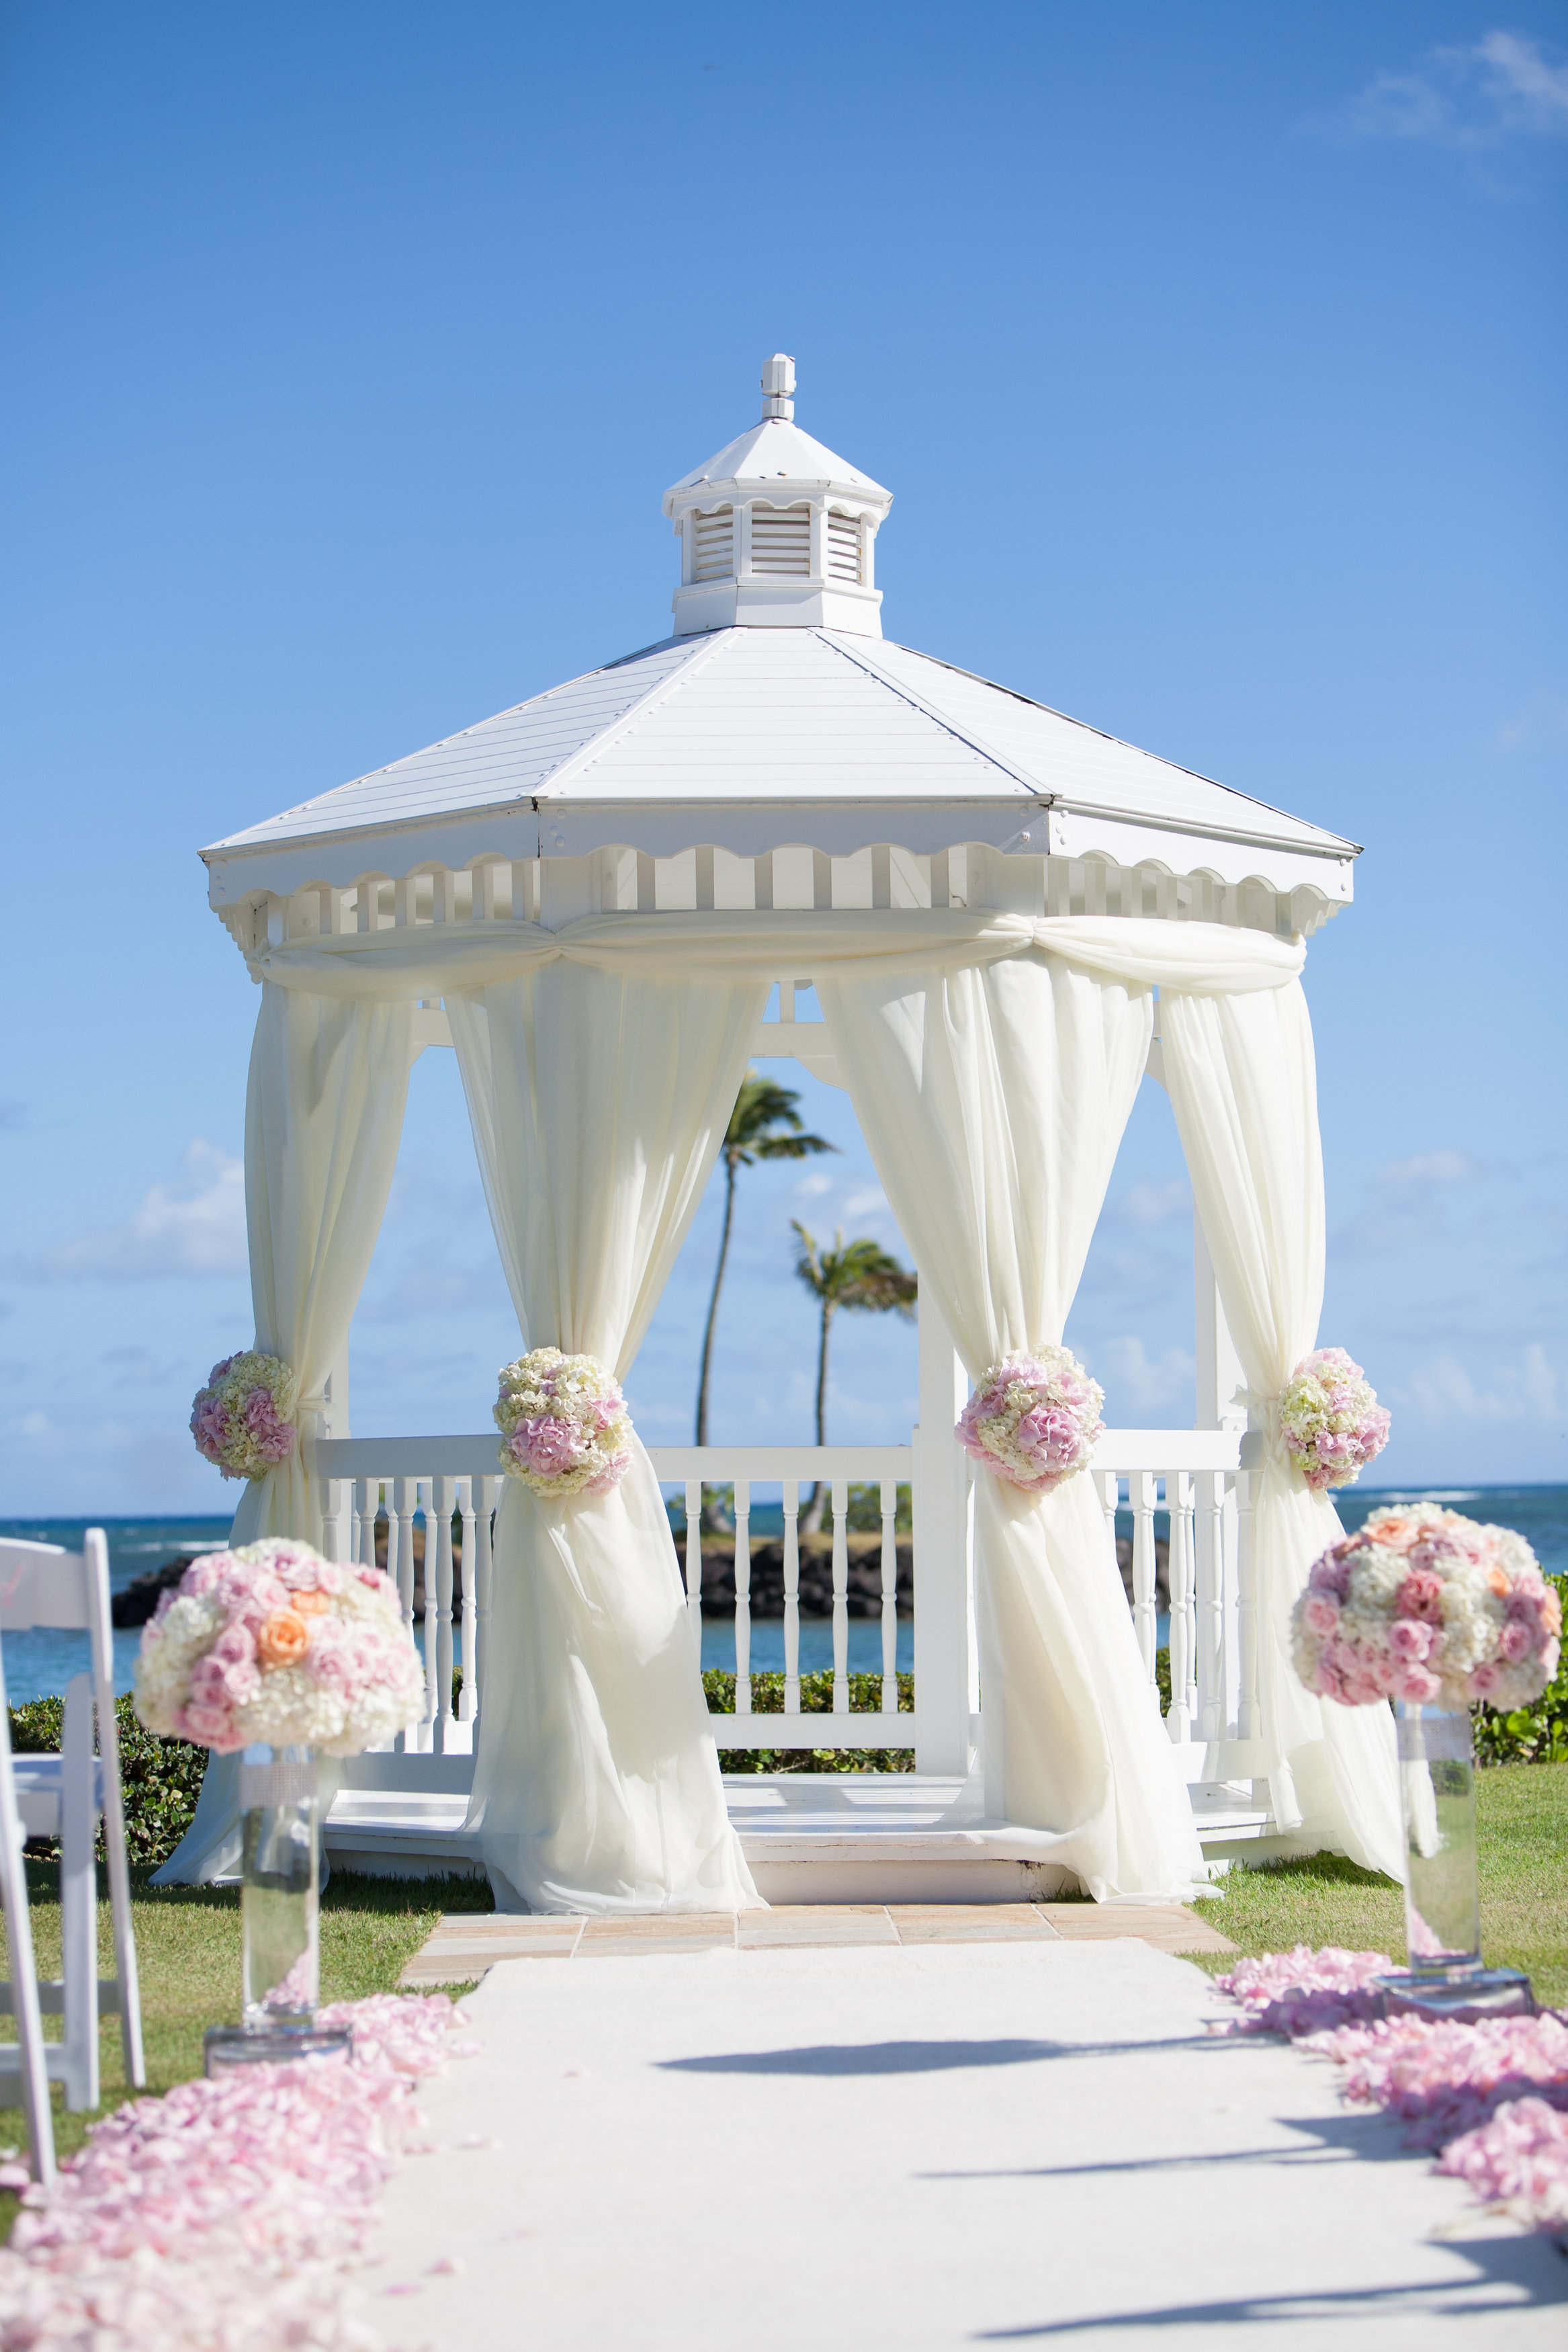 flowing white gazebo + pink ceremony flowers by Passion Roots | Rachel Robertson photography | coordination-neu events | Oahu, Hawaii